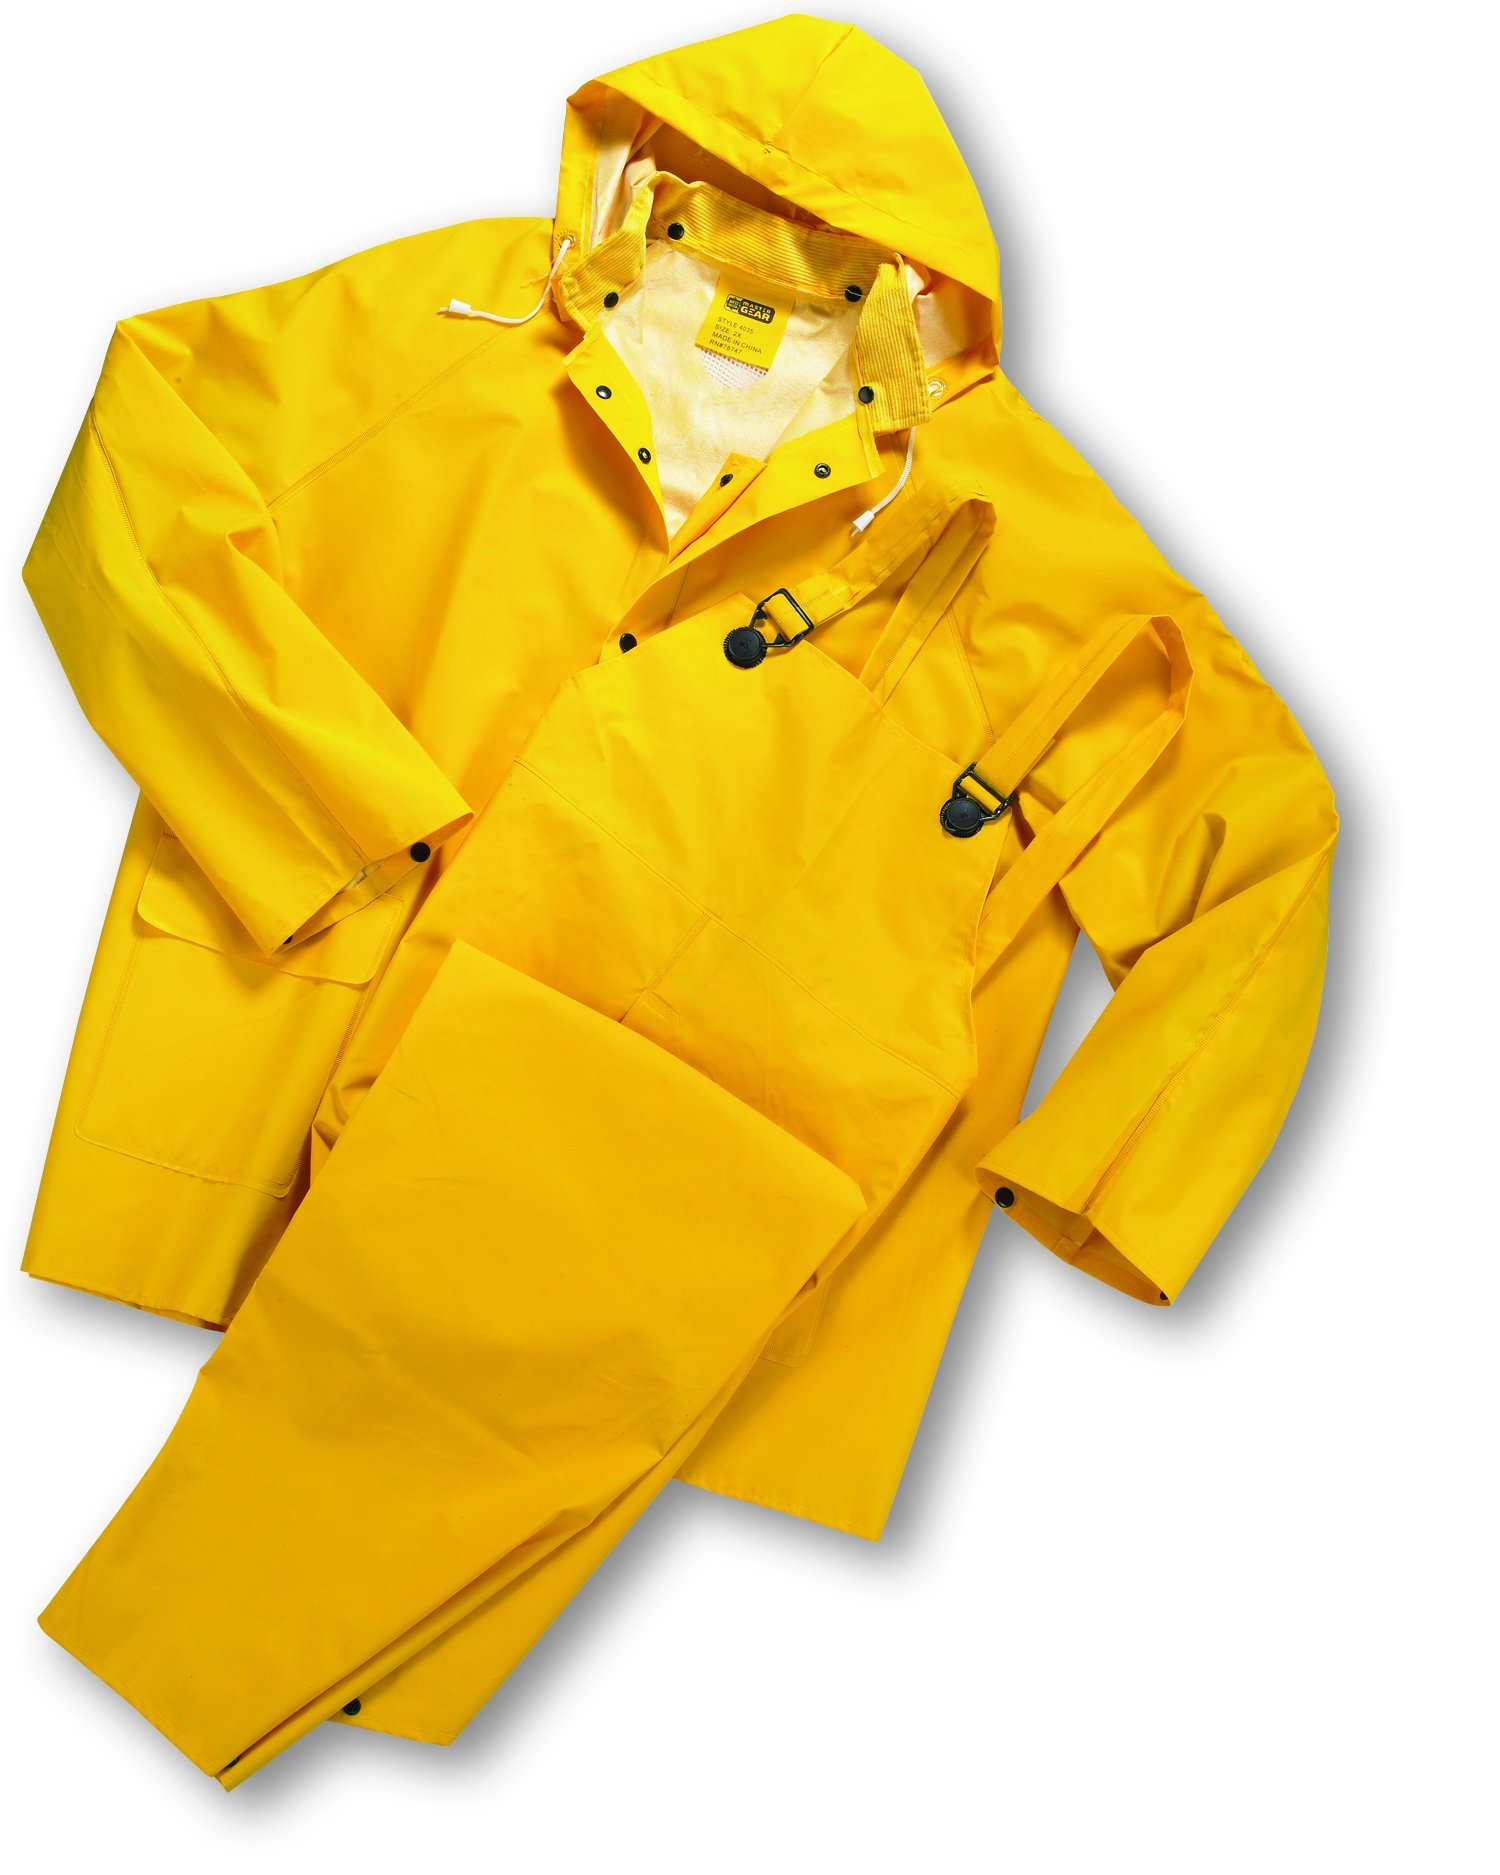 West Chester 4035FR/L 35 ml PVC Over Polyester 3 pcs Rainsuit - Flame Resistant, Yellow, Large (1 Suit)